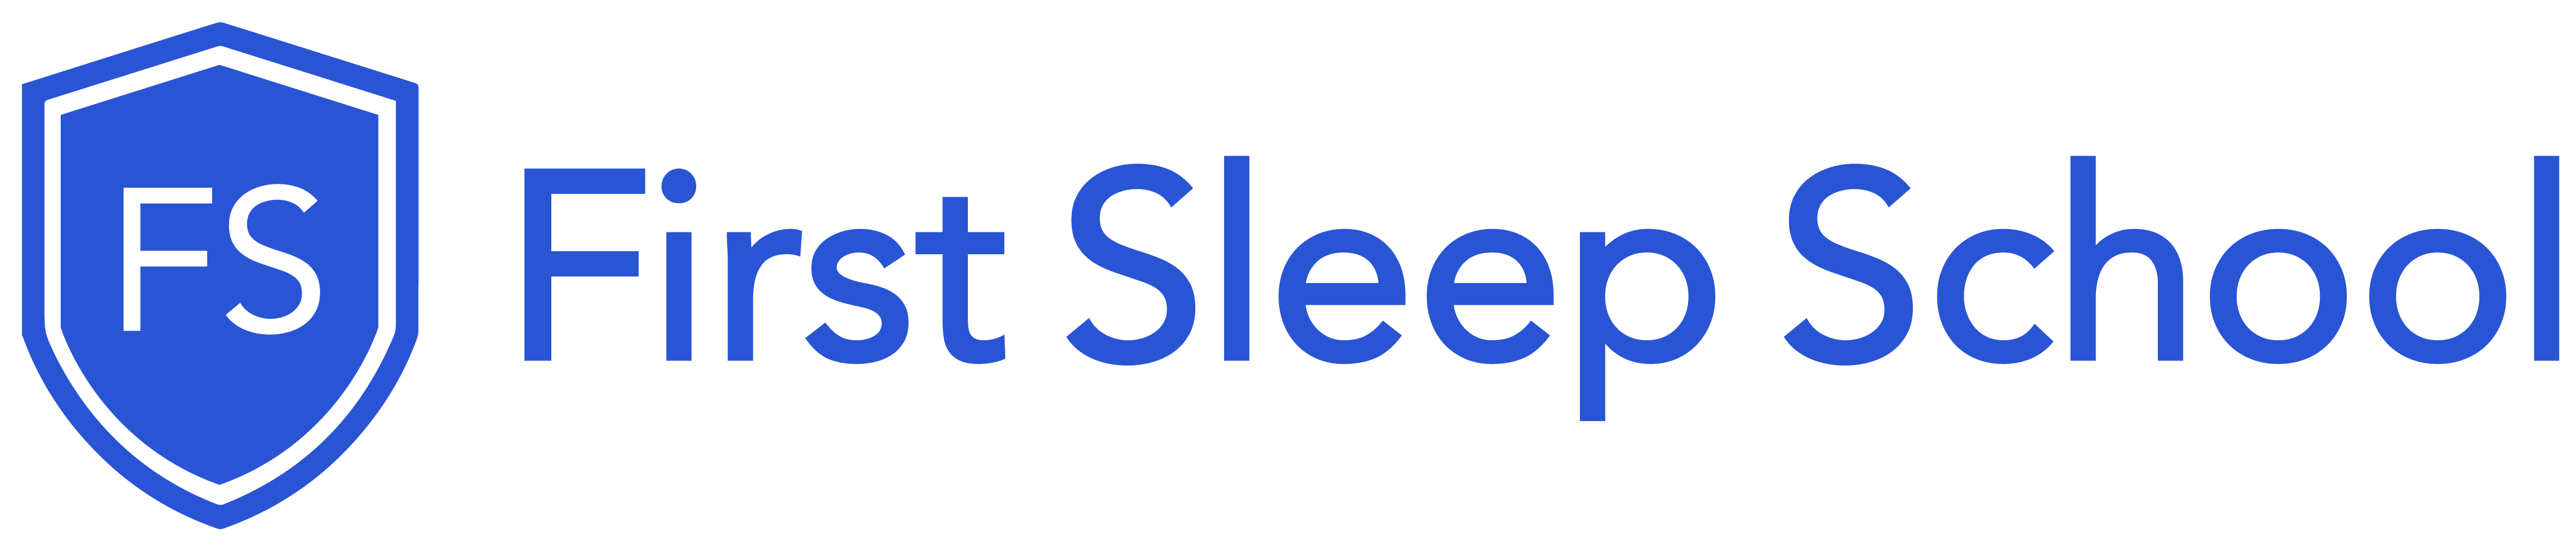 First Sleep School Coupons and Promo Code